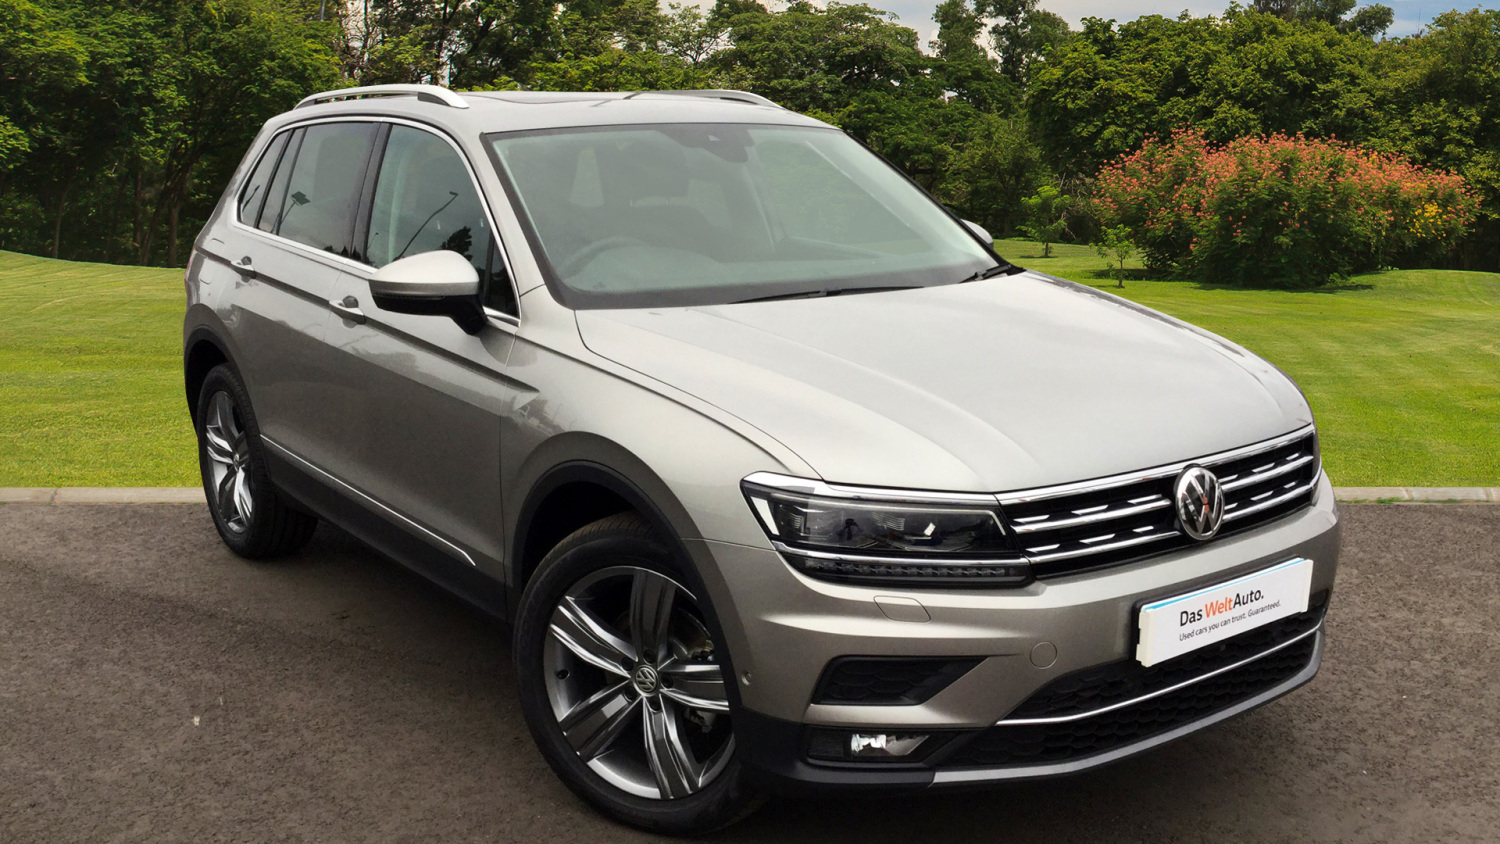 used volkswagen tiguan 2 0 tdi bmt 150 sel 5dr dsg diesel. Black Bedroom Furniture Sets. Home Design Ideas